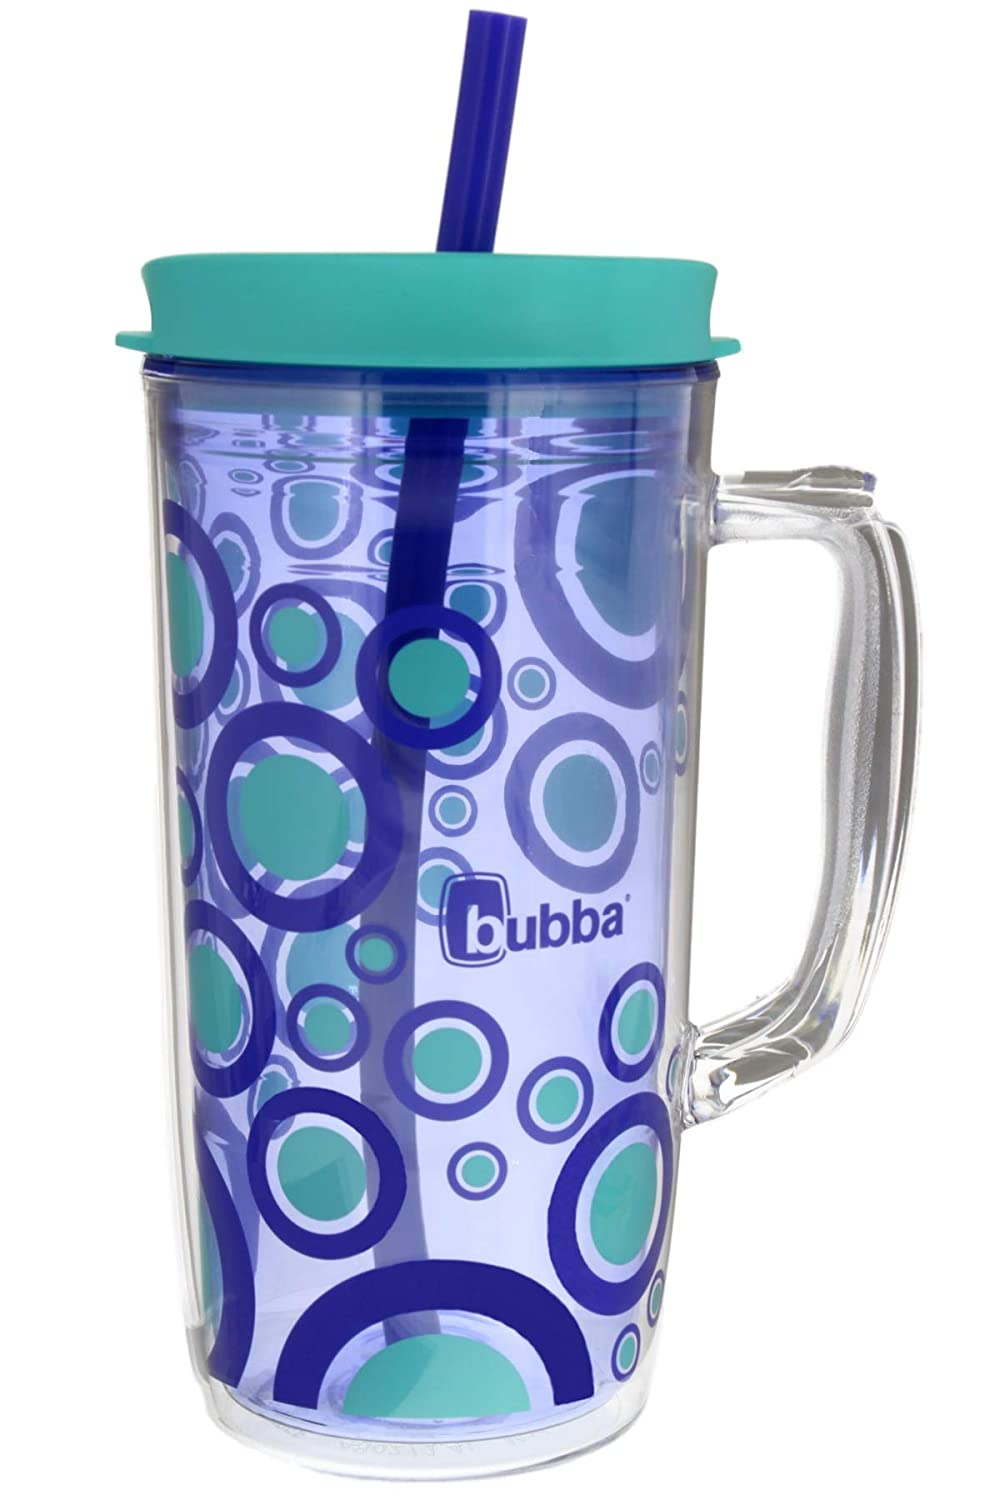 Bubba Envy Insulated Tumbler with Straw, 48oz-Ideal Travel Mug with Handle that is Impact, Stain, Sweat, and Odor Resistant-Insulated Water Bottle to Take on the Go- Vineyard with Bubble Graphic